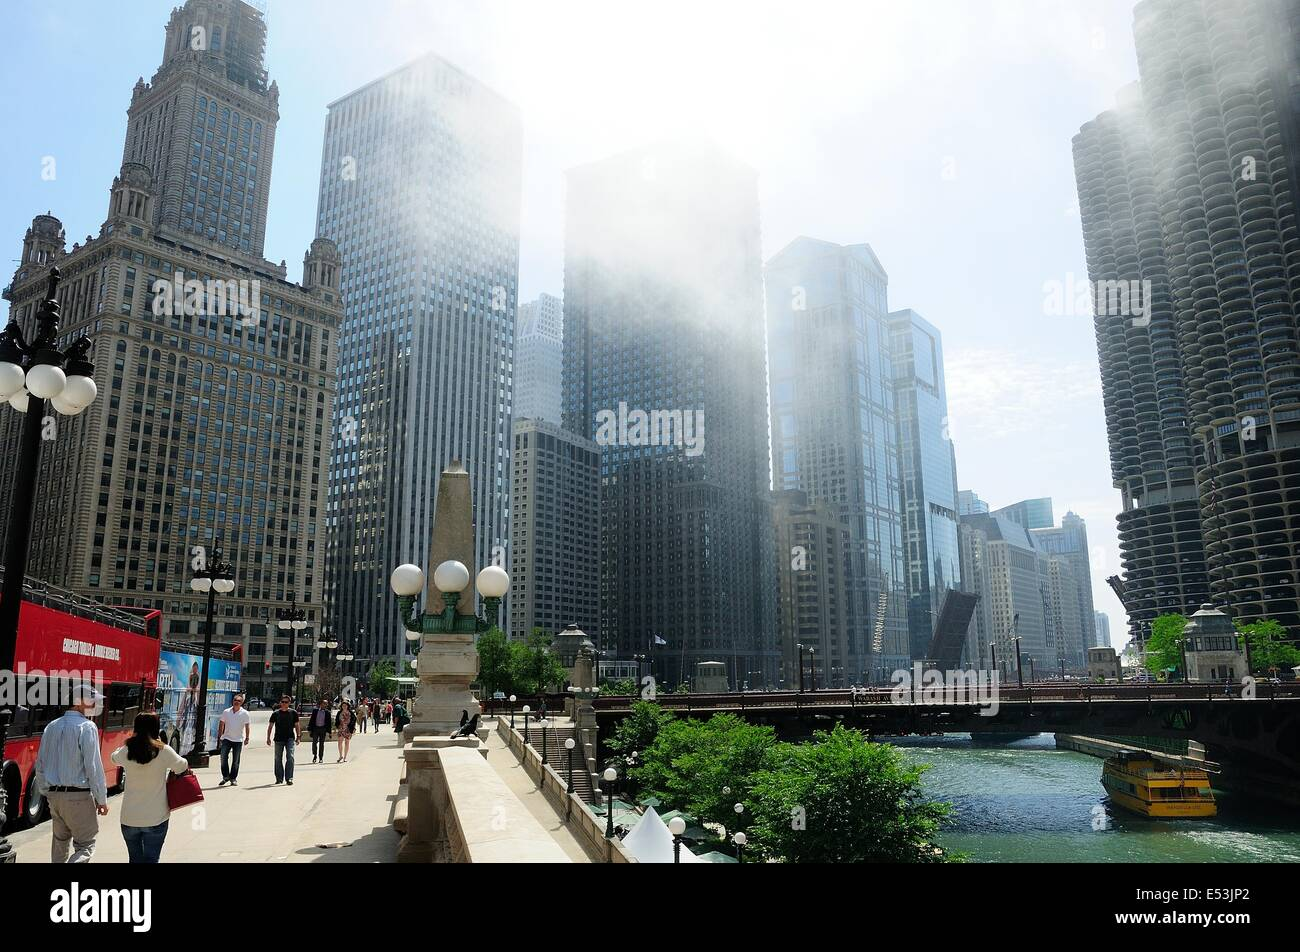 Chicago's River Walk park and Wacker Drive along the Chicago River. - Stock Image